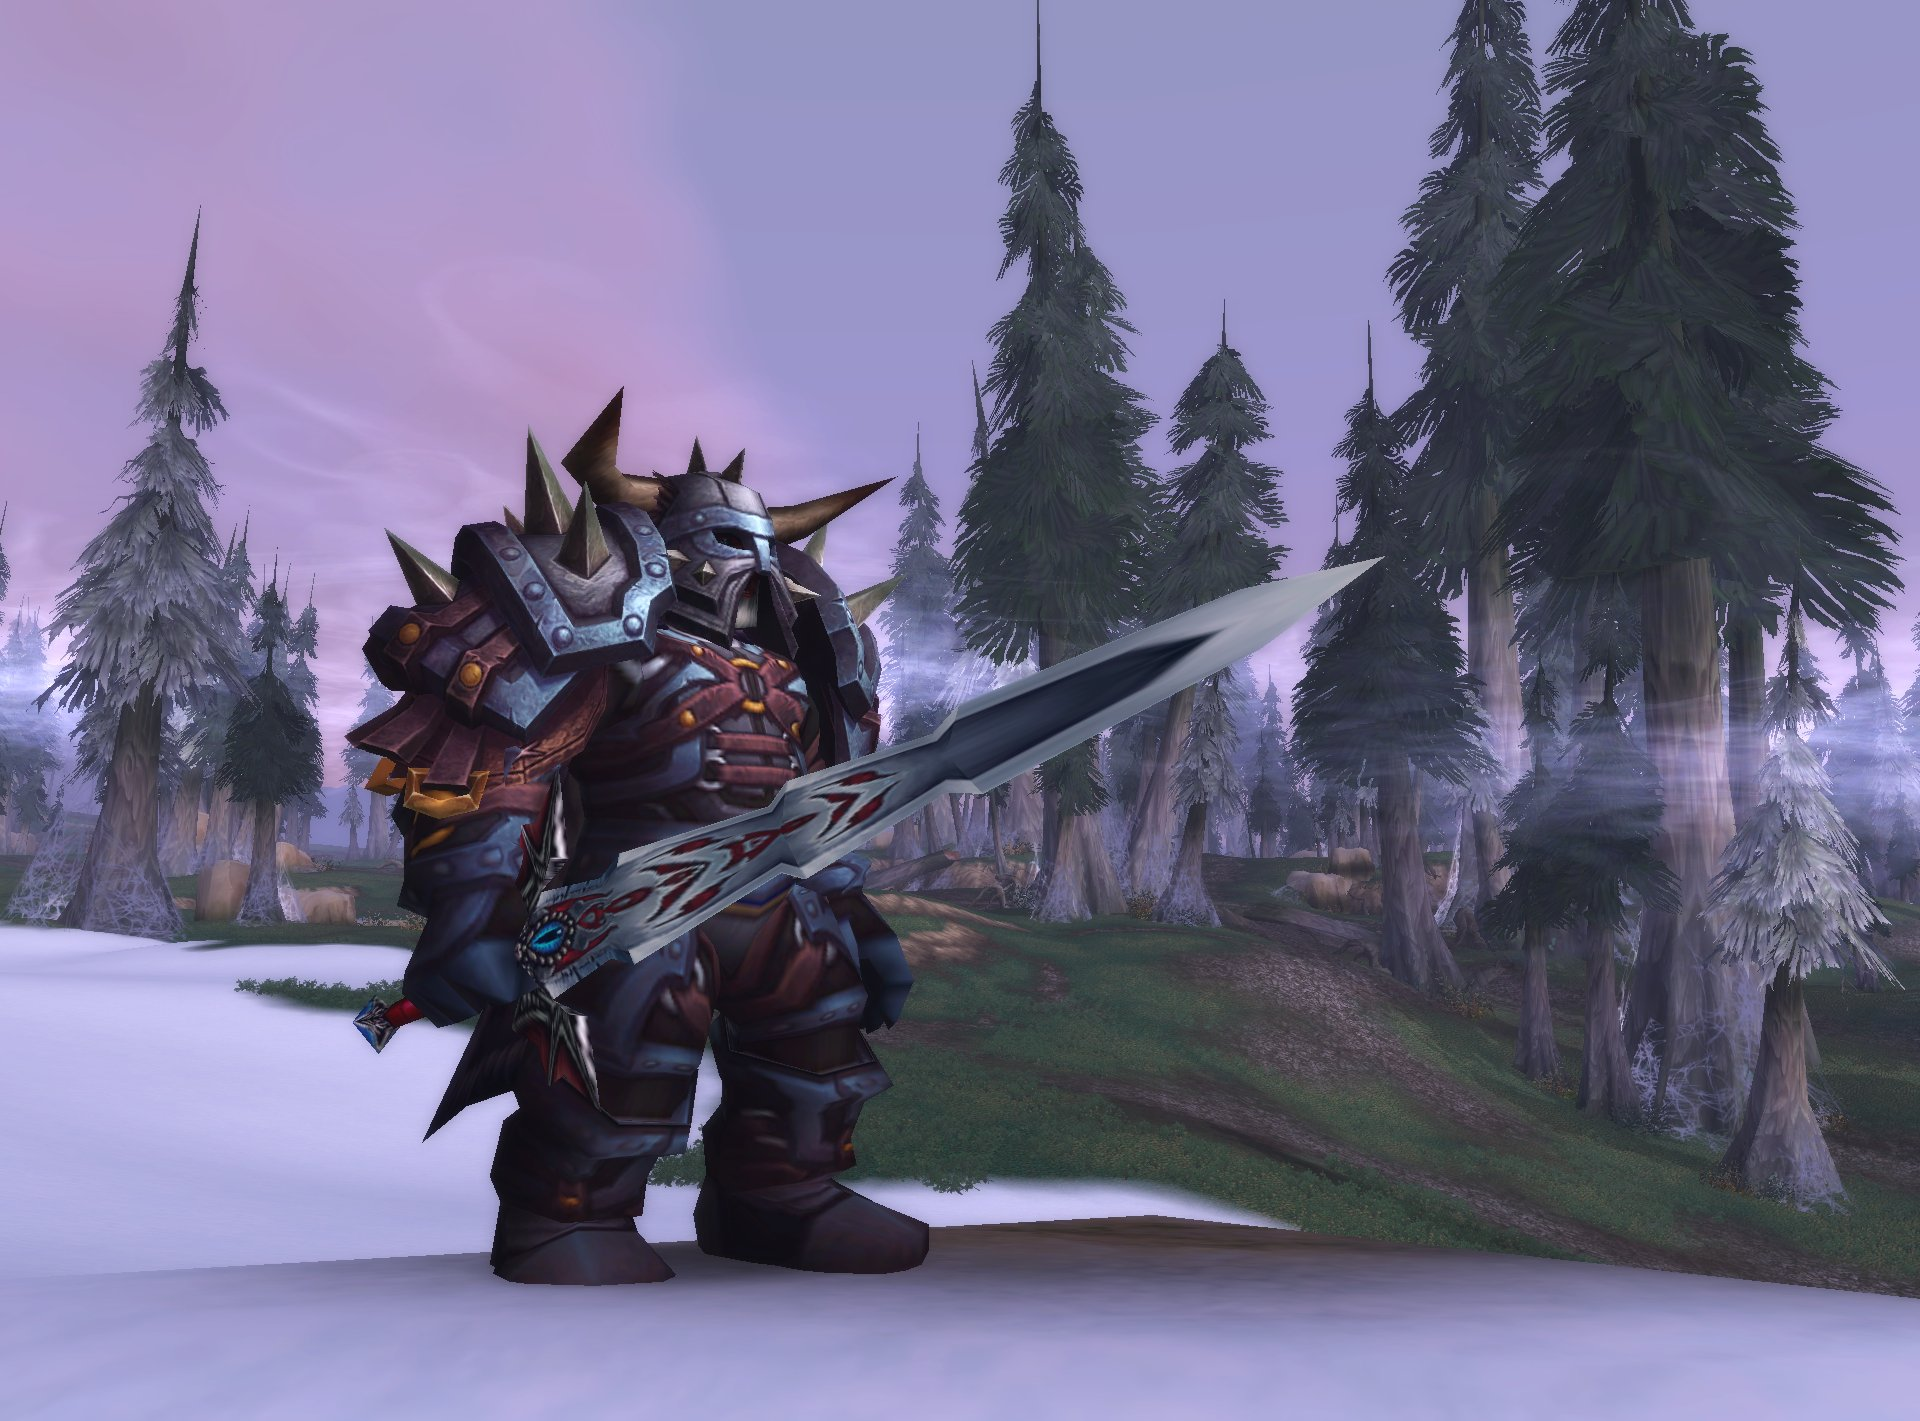 death knight clss mount guide